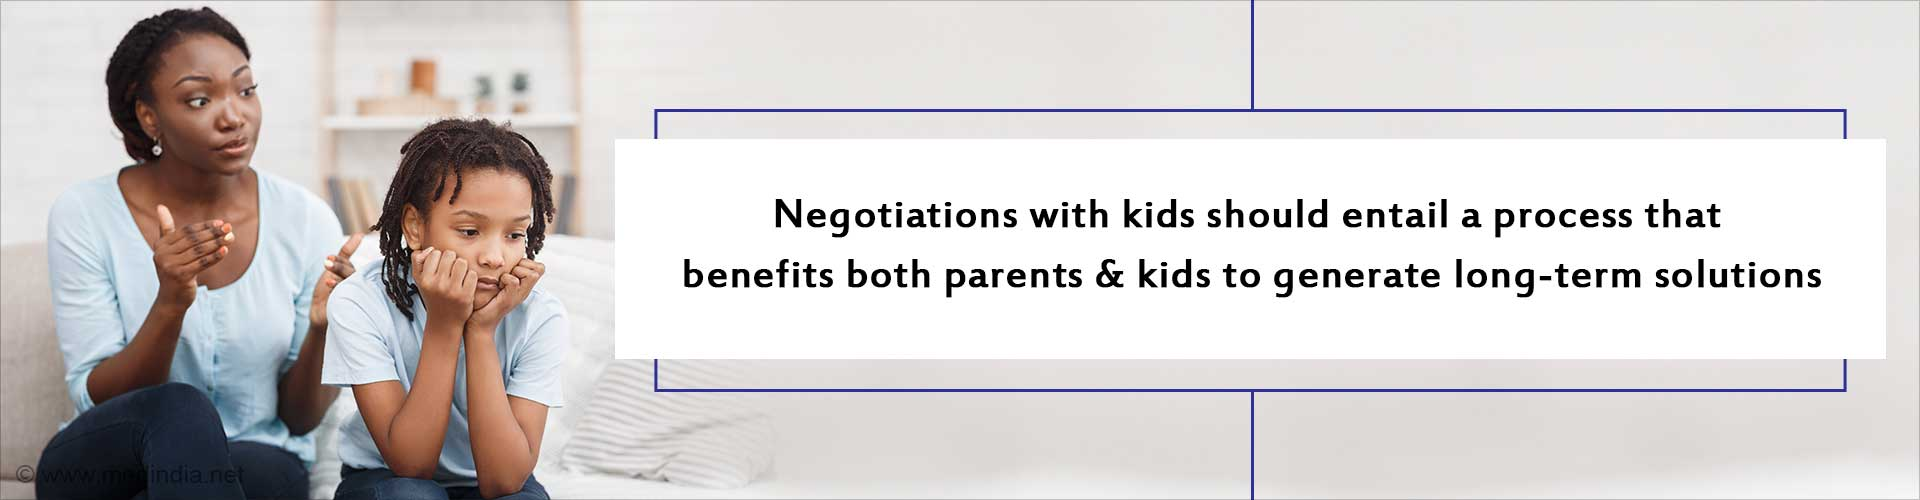 How to Negotiate With Kids?